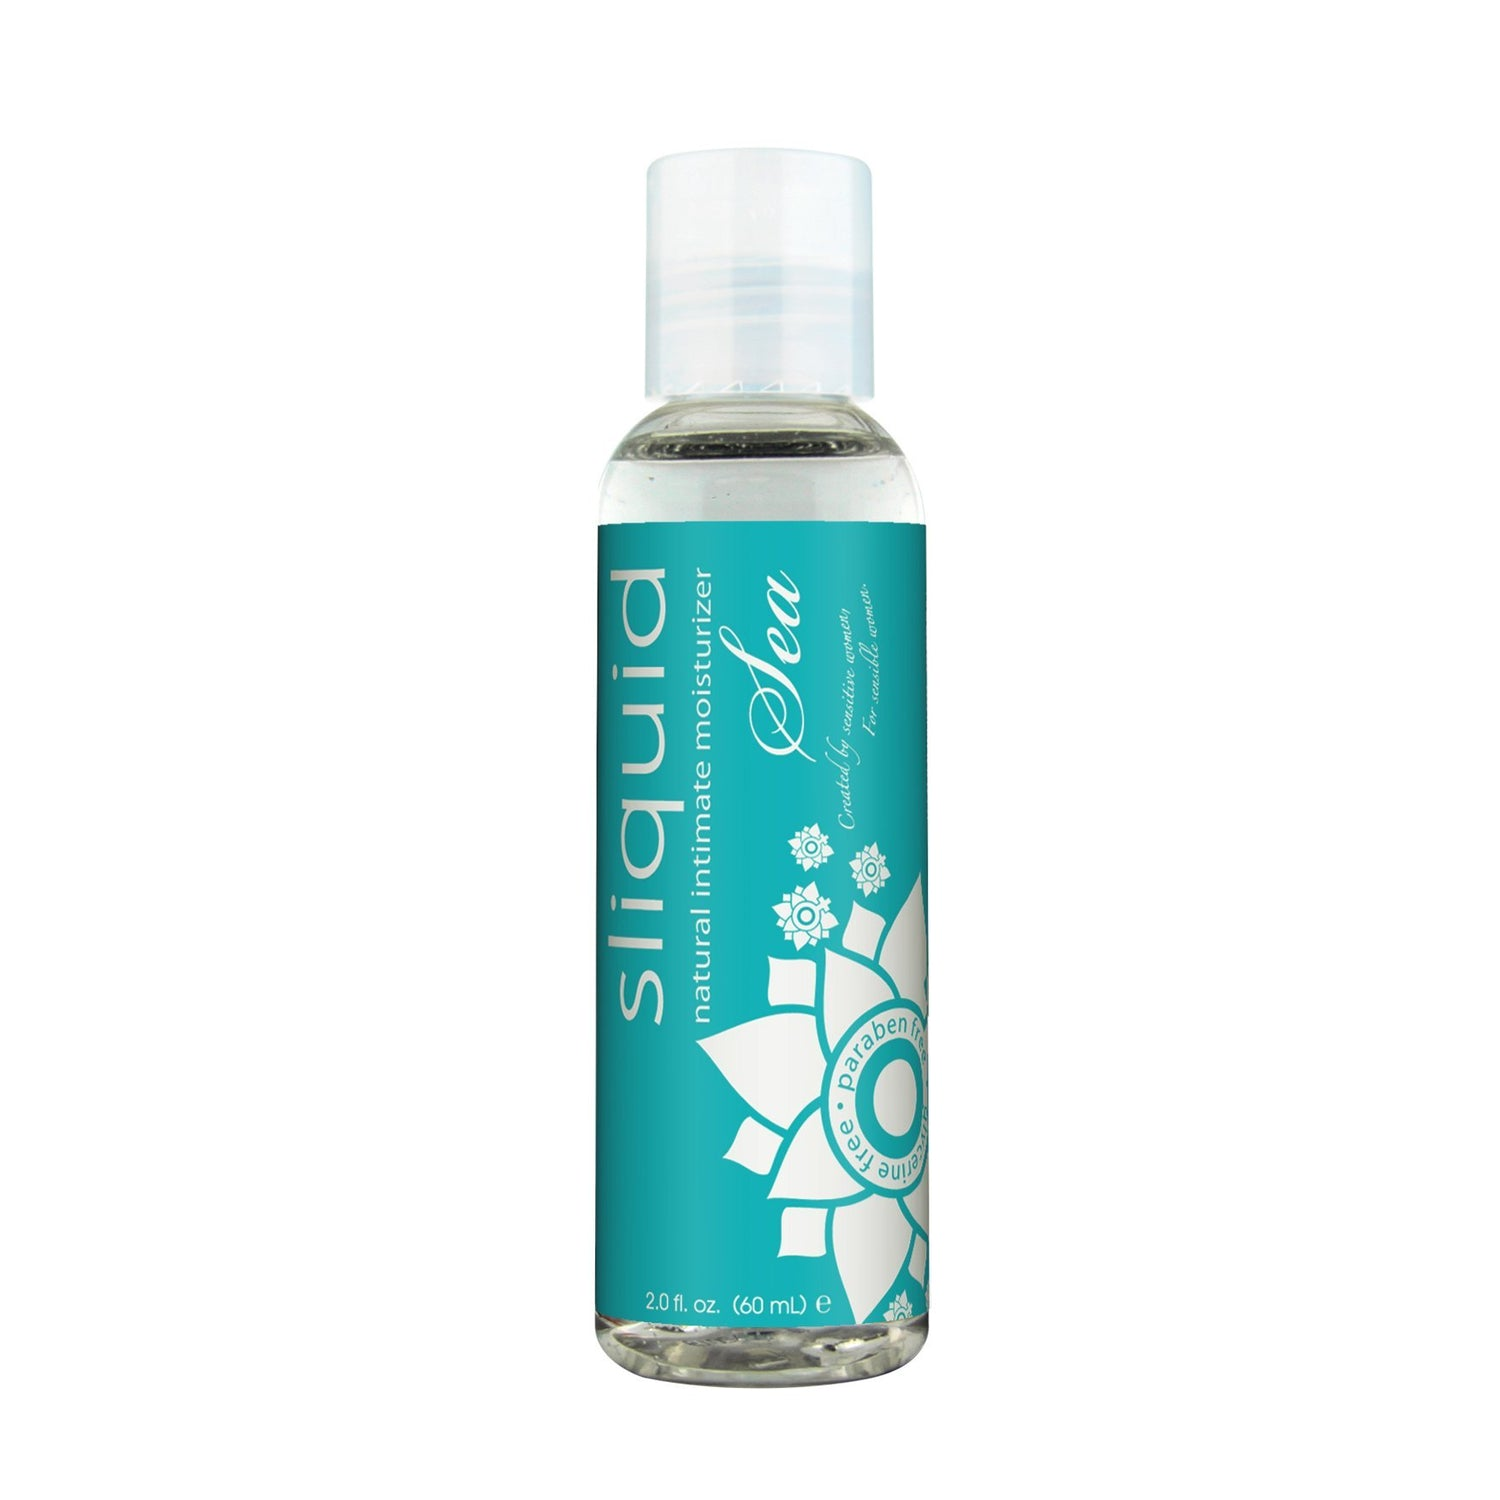 Sliquid - Sea Naturals Lubricant Bottle 2 oz (Lube) Lube (Water Based) - CherryAffairs Singapore